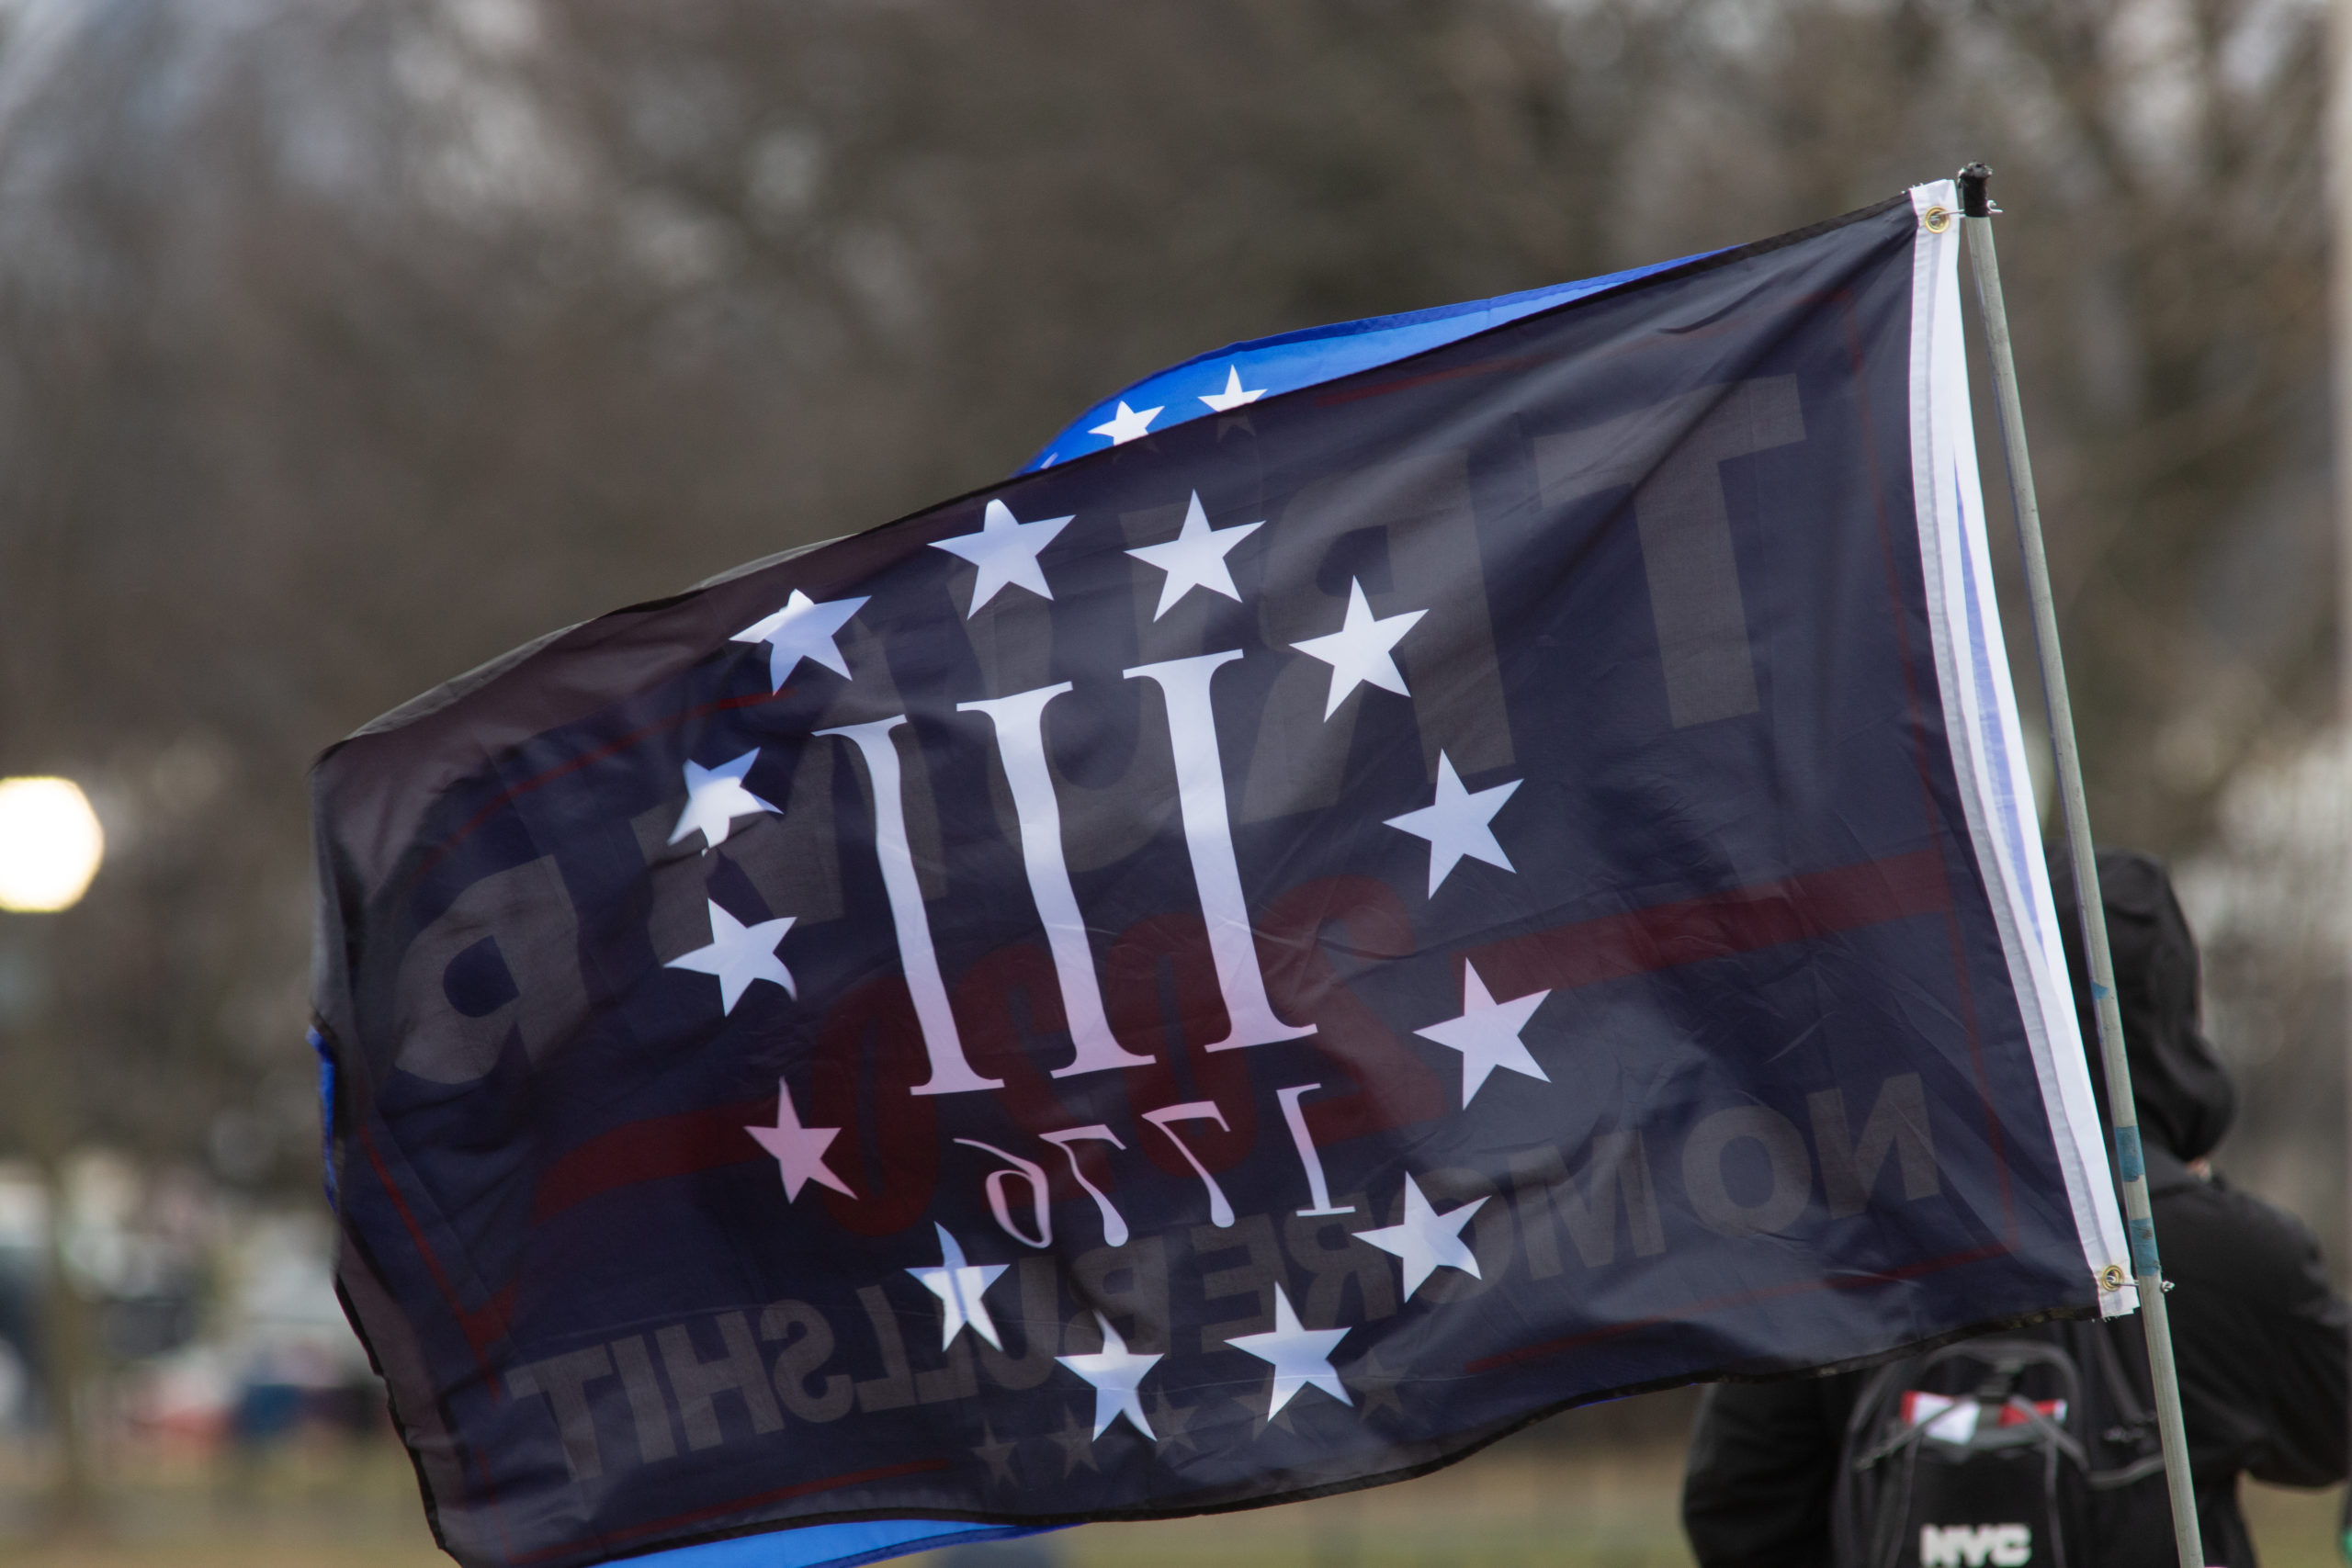 A Three Percenters flag flew with a Trump flag ahead of his rally in Washington, D.C. on Jan. 6, 2021. (Kaylee Greenlee – Daily Caller News Foundation)